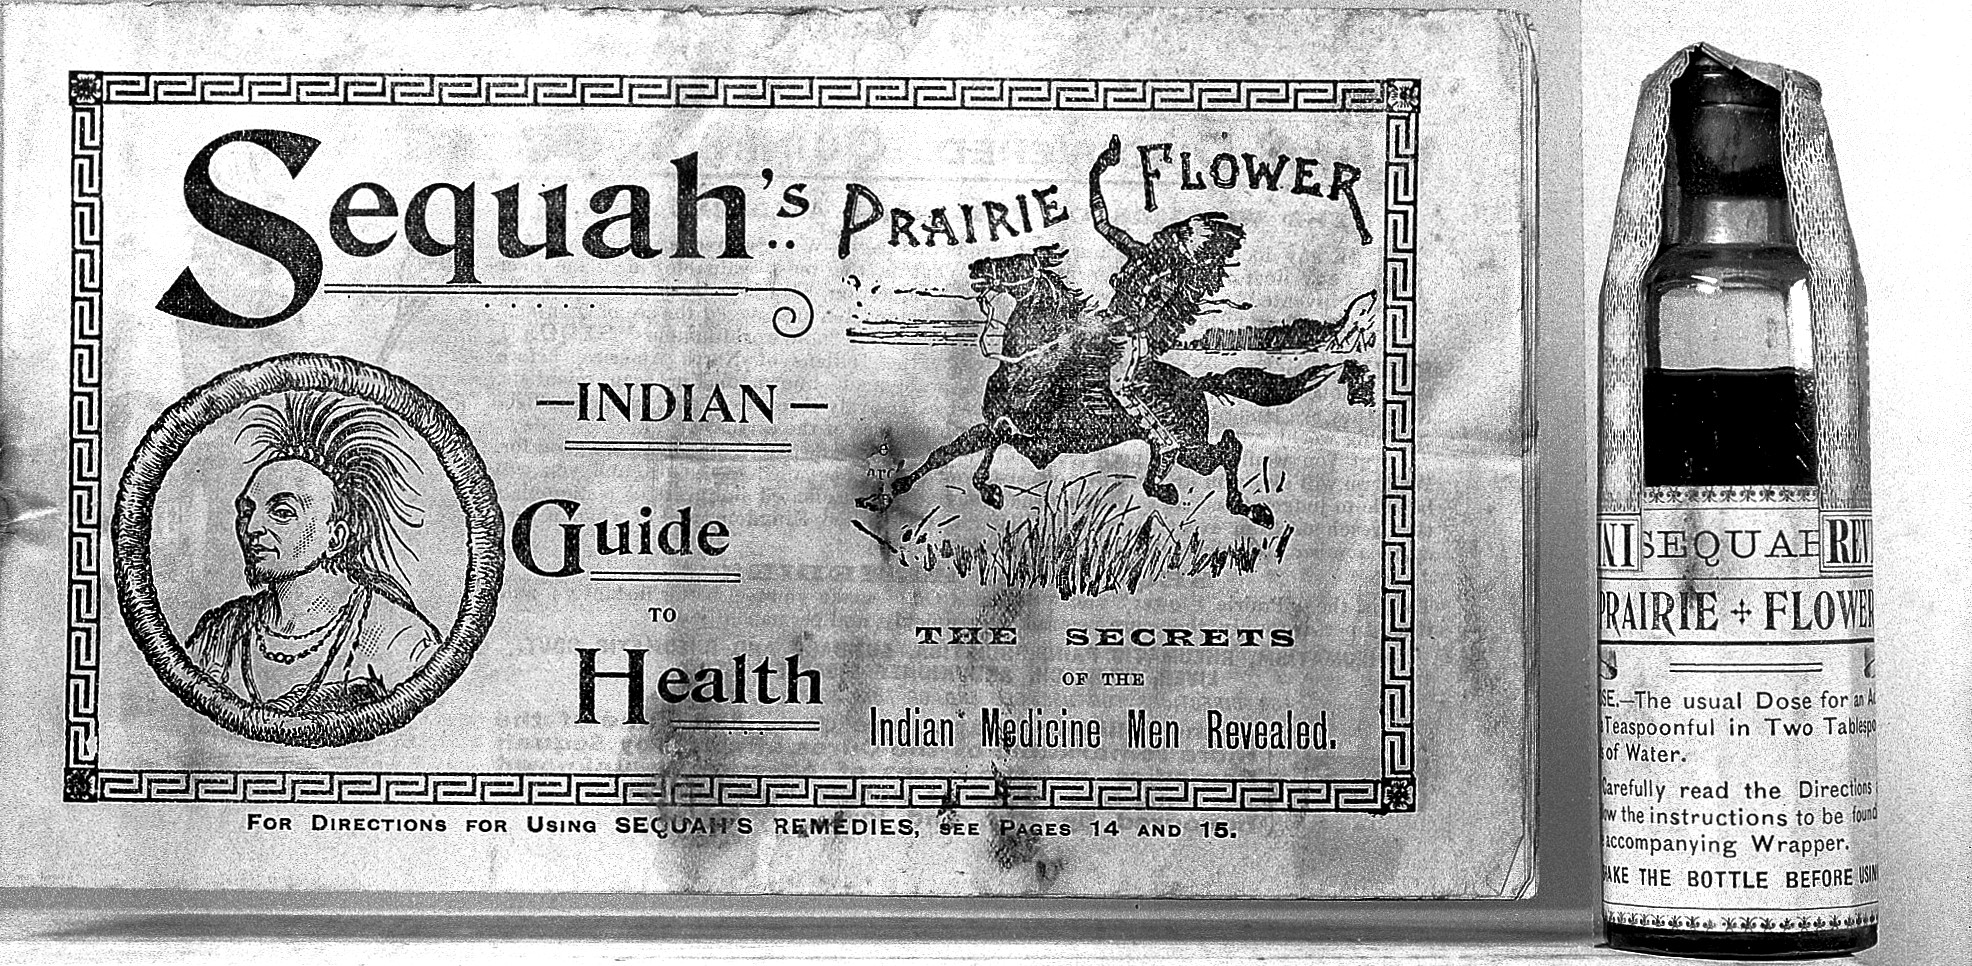 Advertisement for Sequahs Indian Prairie Flower